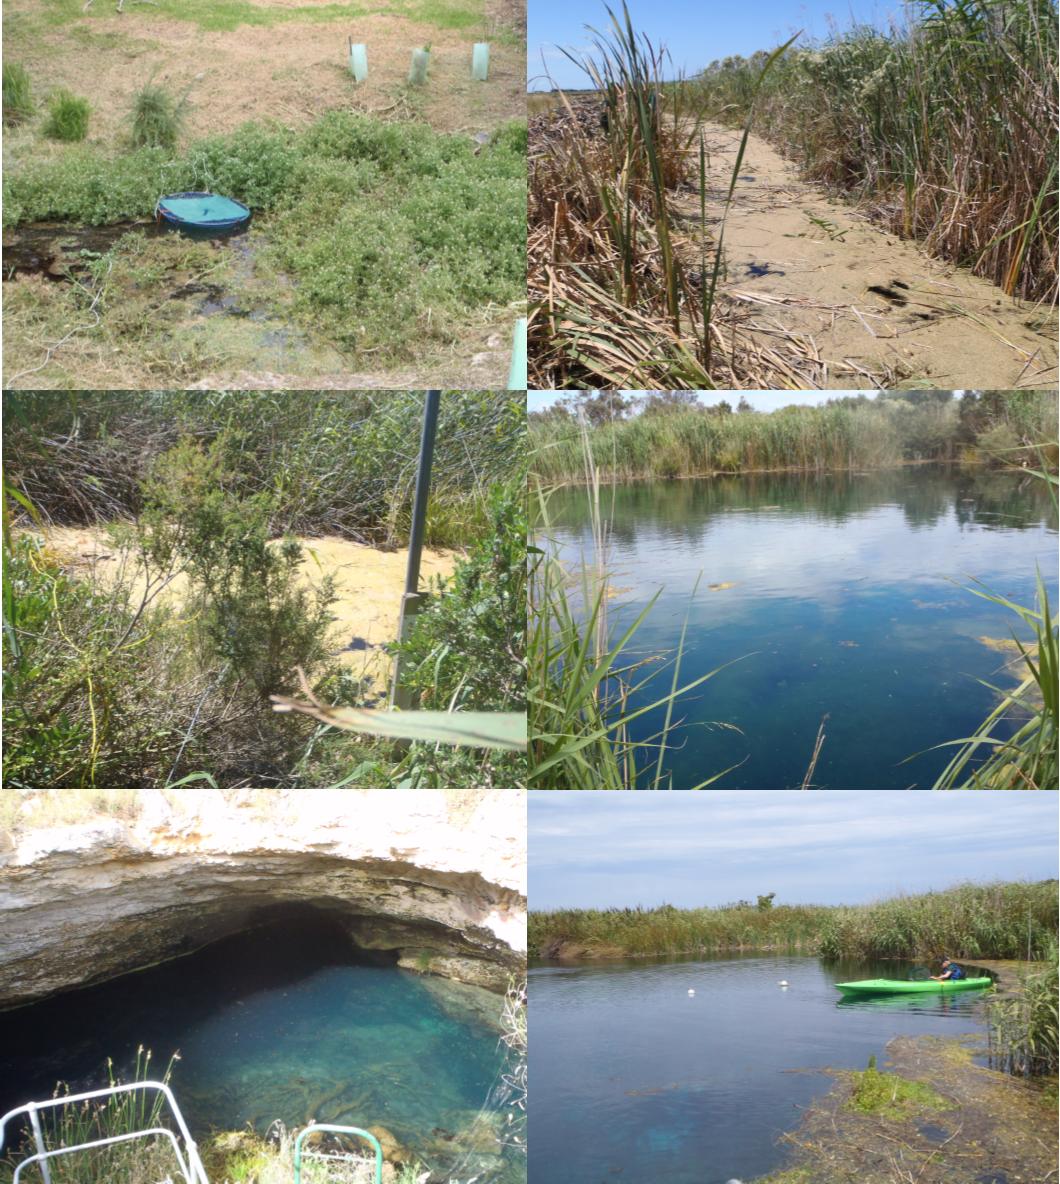 Selection of monitoring sites in summer 2017/18 (clockwise from top left): Isolated – Clarke Park; Jerusalem Creek – Little Piccaninnie; Hitchcox Drain – Bones Pond; and Deep Creek – Stratmans Pond; Isolated- The Pines; Eight Mile Creek – Ewens Pond 3.